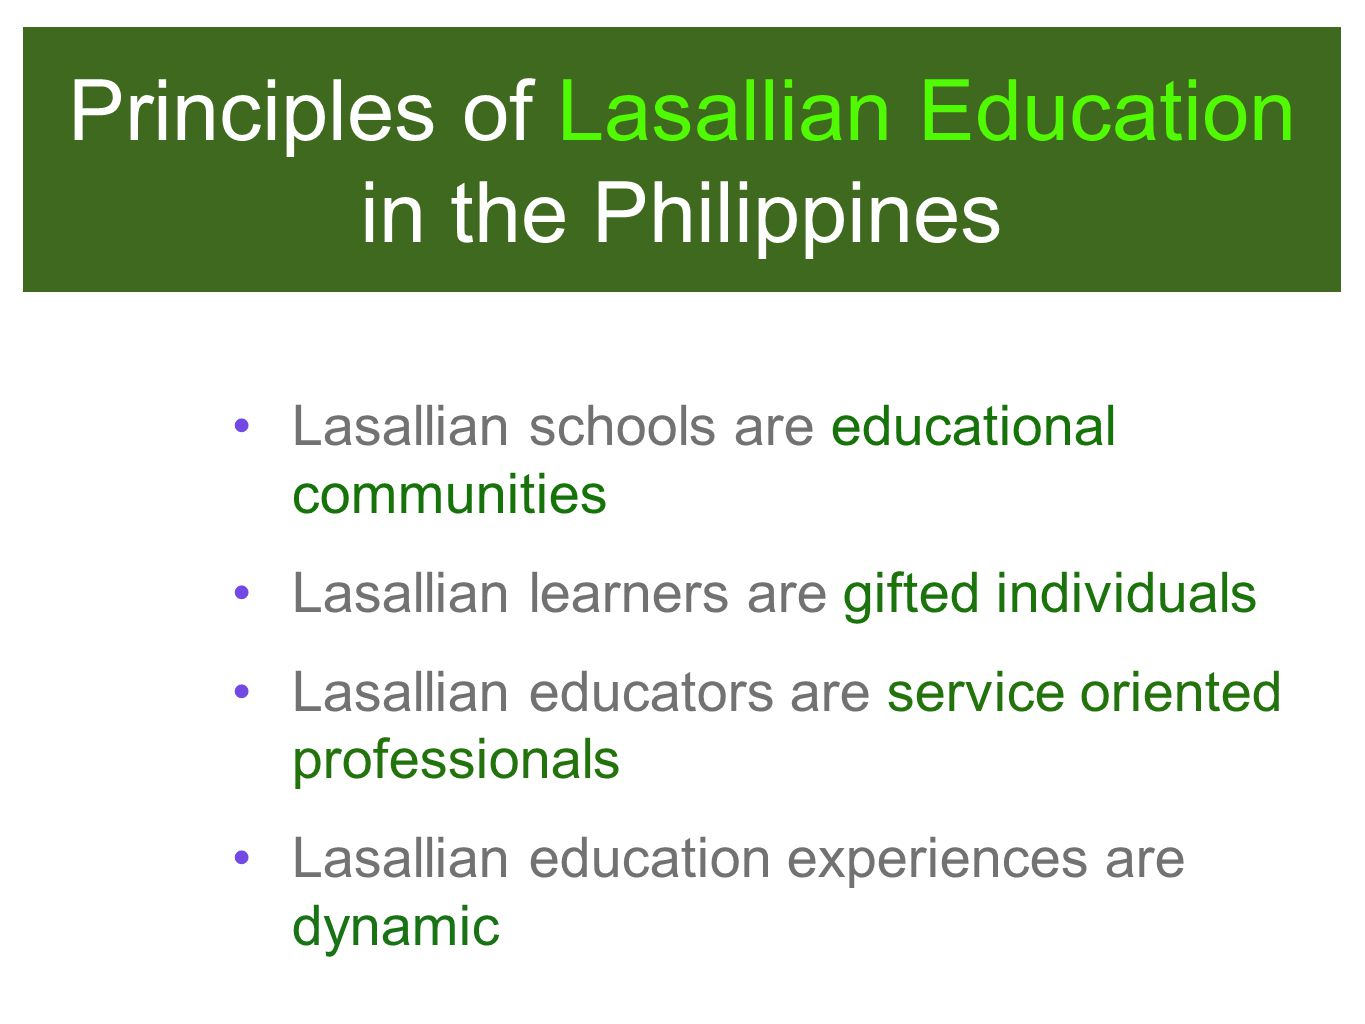 Principles of Lasallian Education in the Philippines Lasallian schools are educational communities Lasallian learners are gifted individuals Lasallian educators are service oriented professionals Lasallian education experiences are dynamic